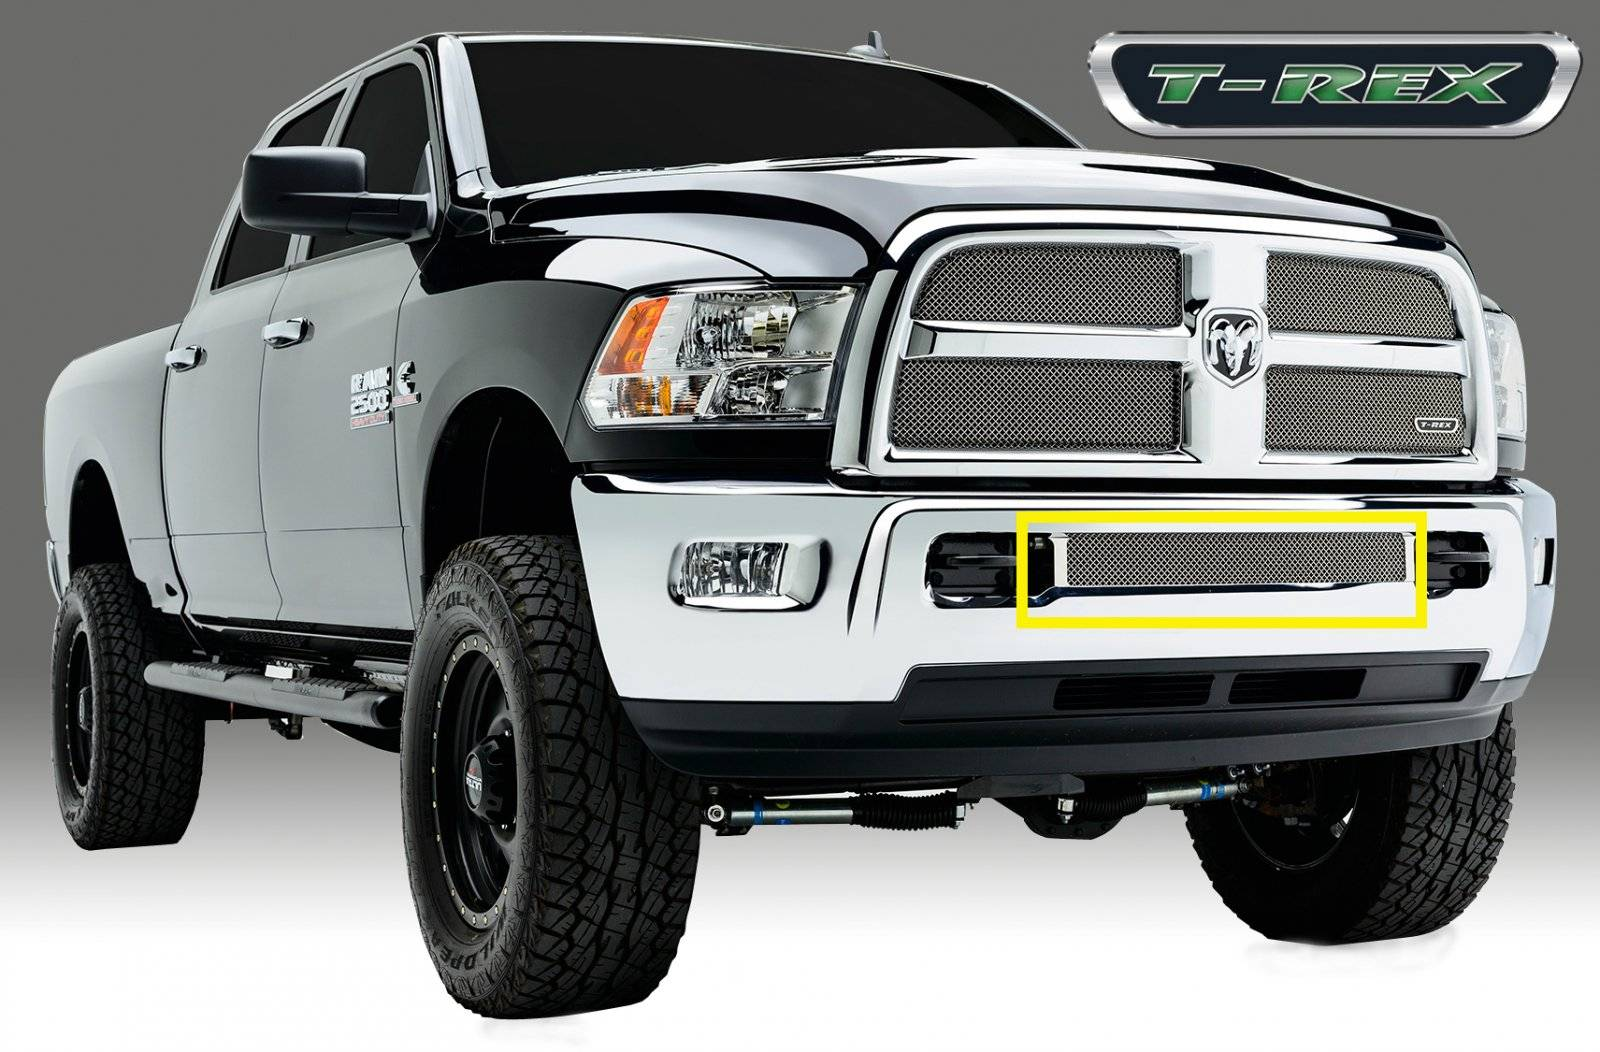 T-REX Grilles - Dodge Ram PU 2500 / 3500 Sport Series, Mesh Grille, Bumper, Insert, 1 Pc, Triple Chromed Stainless Steel - Pt # 45452